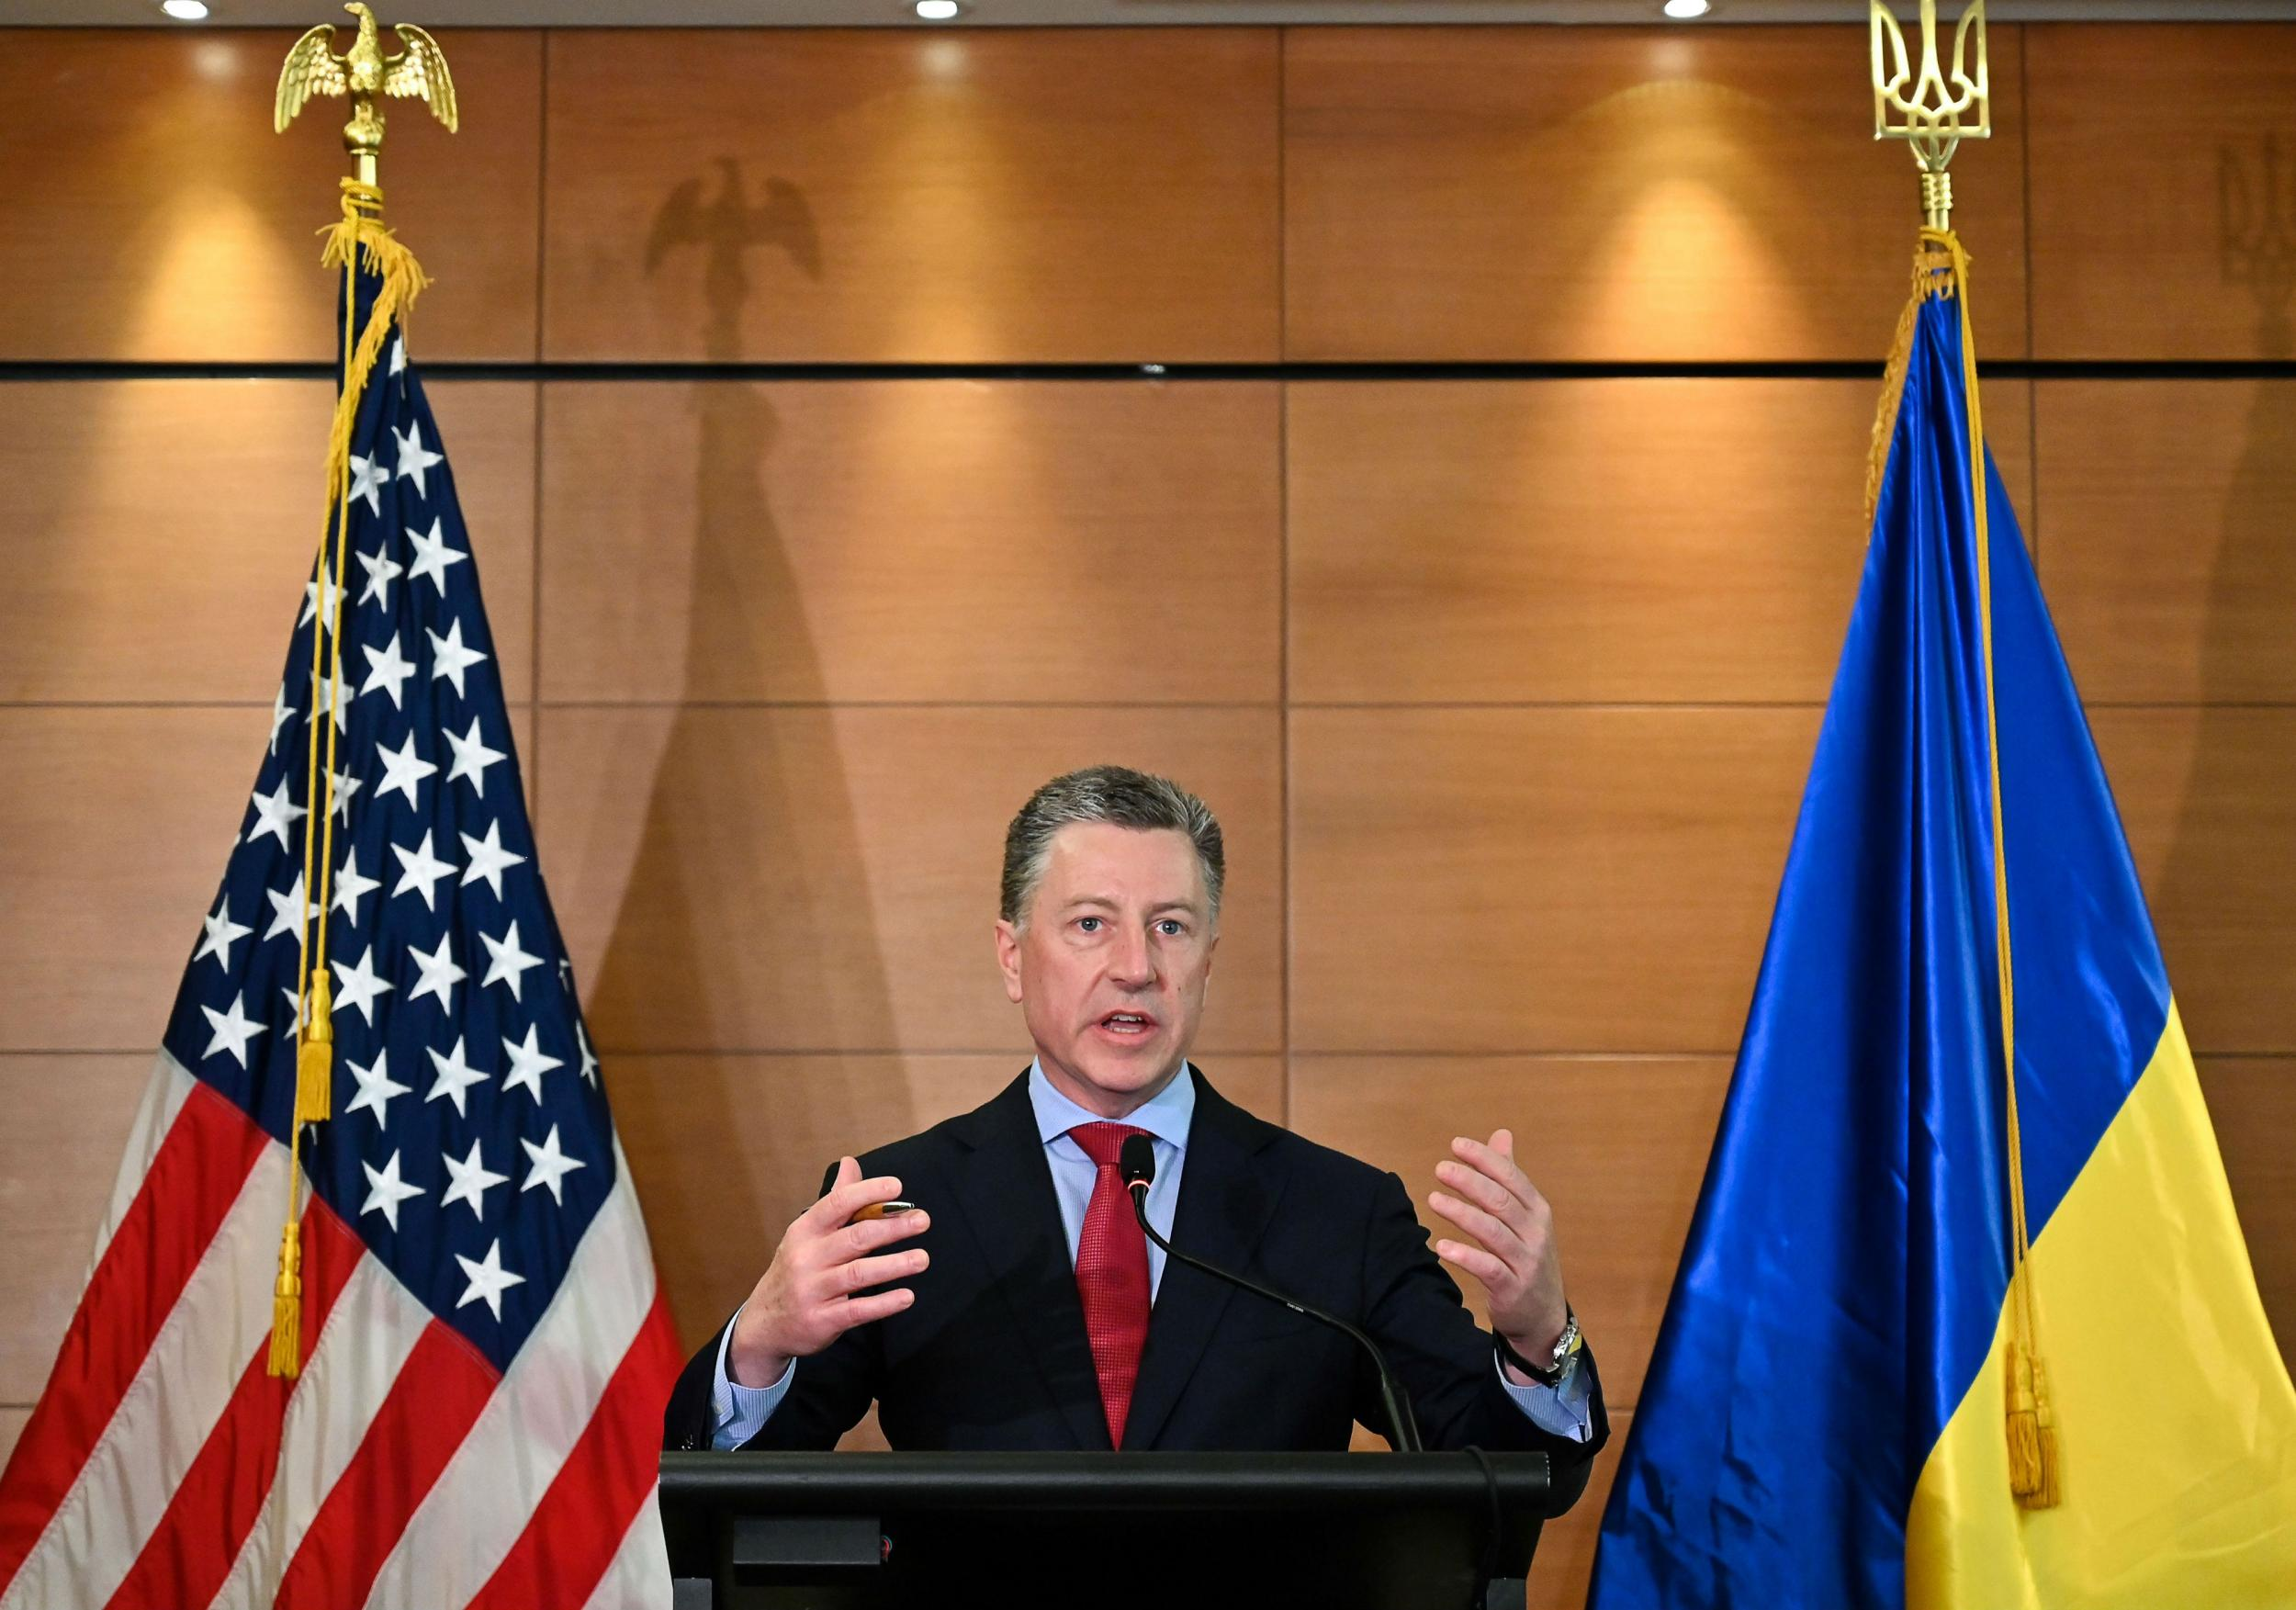 Trump envoy to Ukraine resigns after being named in whistleblower complaint